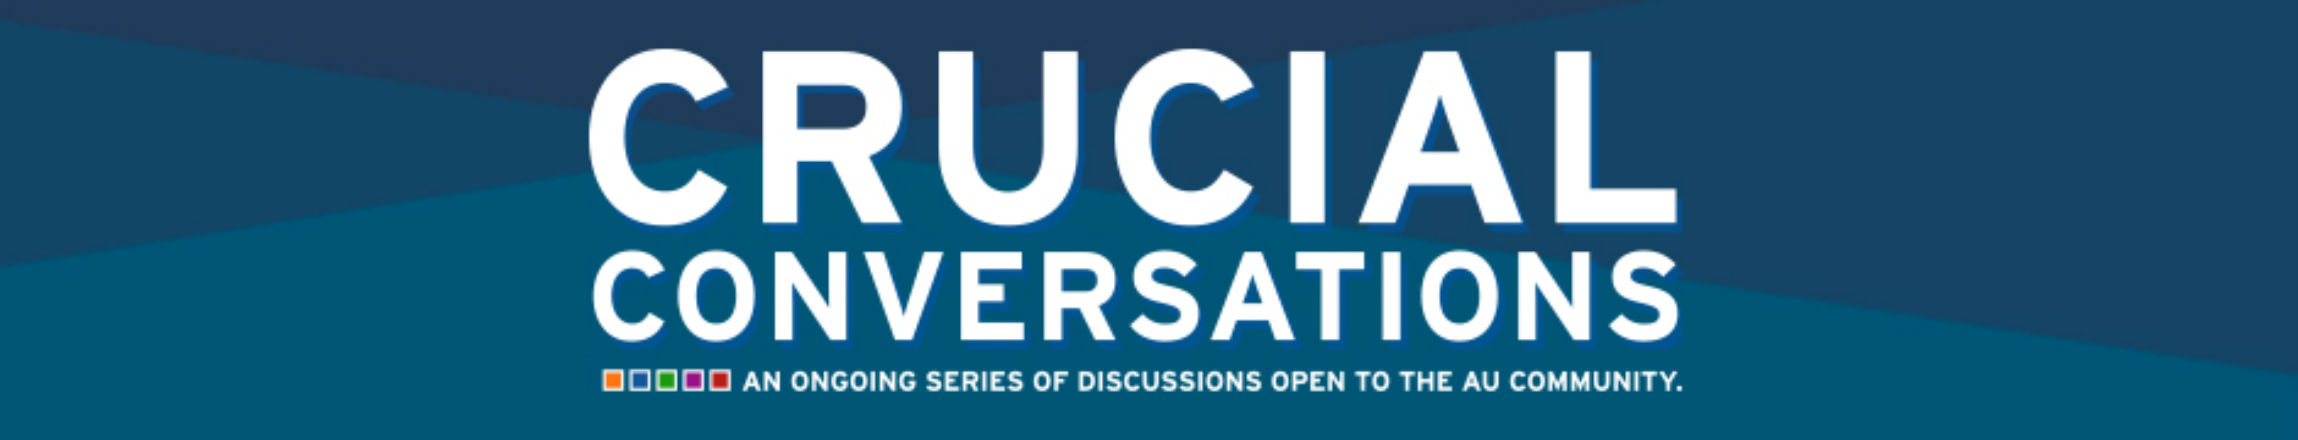 Crucial Conversations an ongoing series of discussions open to the AU community